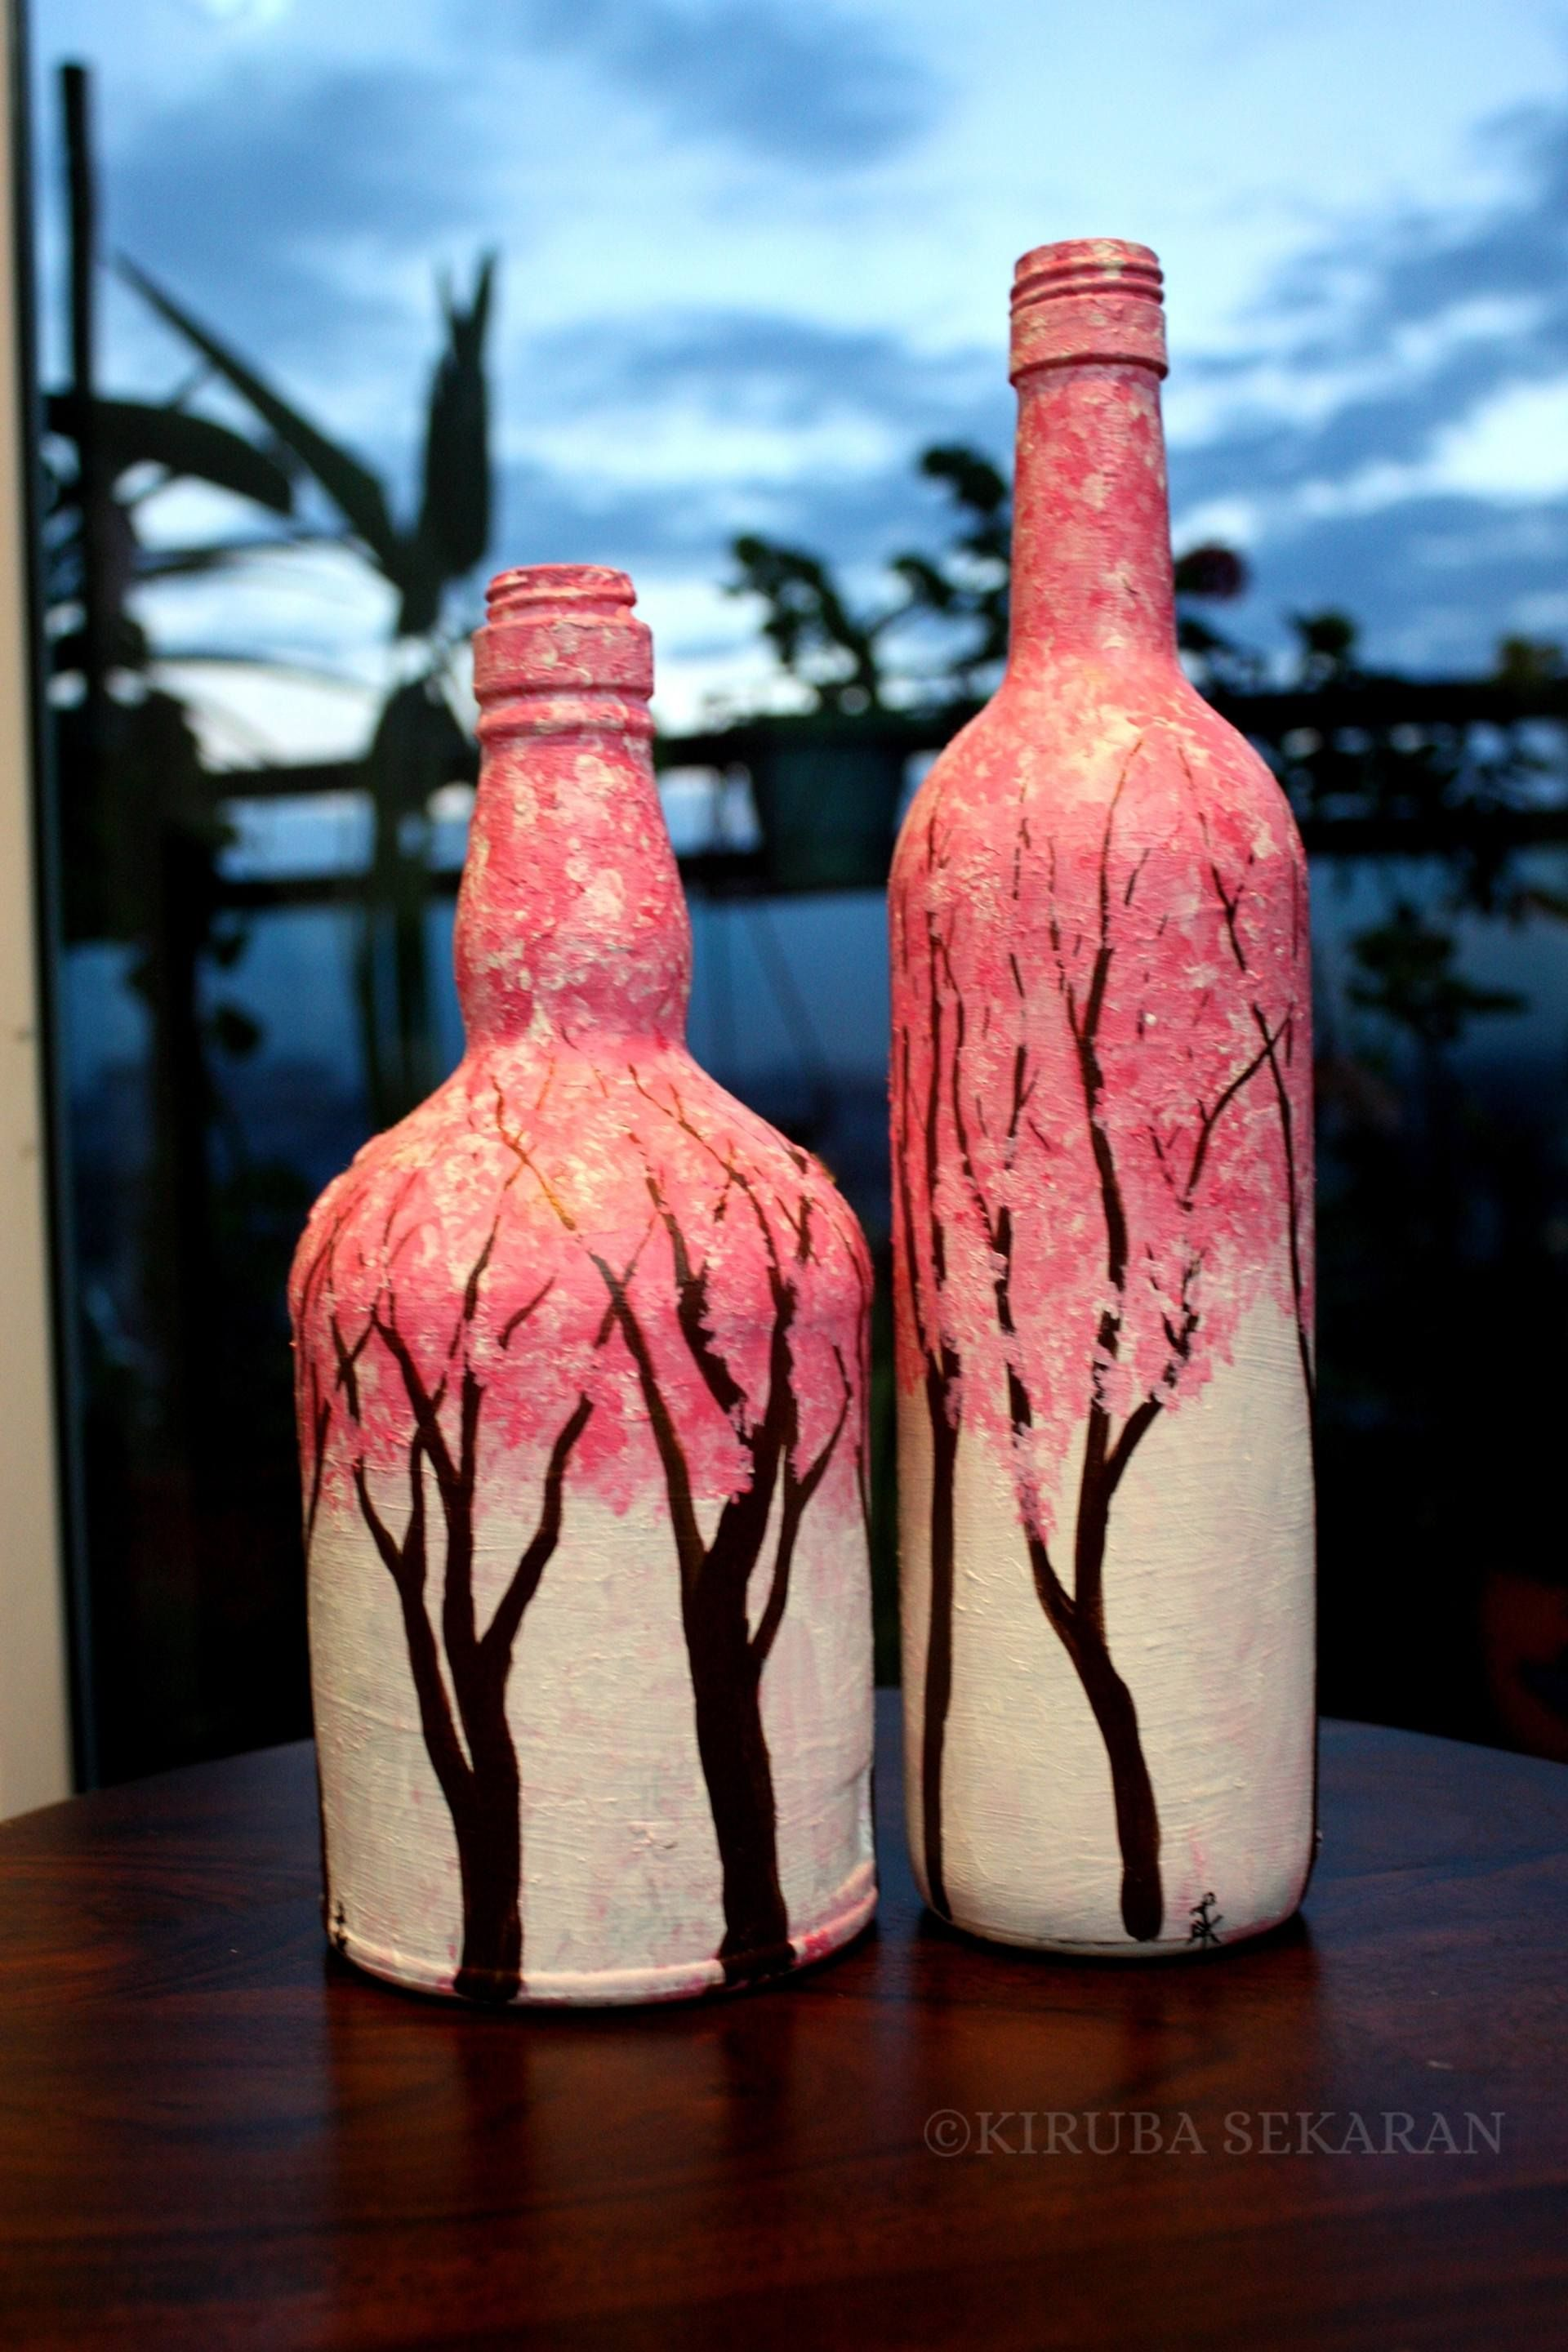 Cherry Blossom Painting In 2020 Painted Glass Bottles Beer Bottle Art Hand Painted Wine Bottles